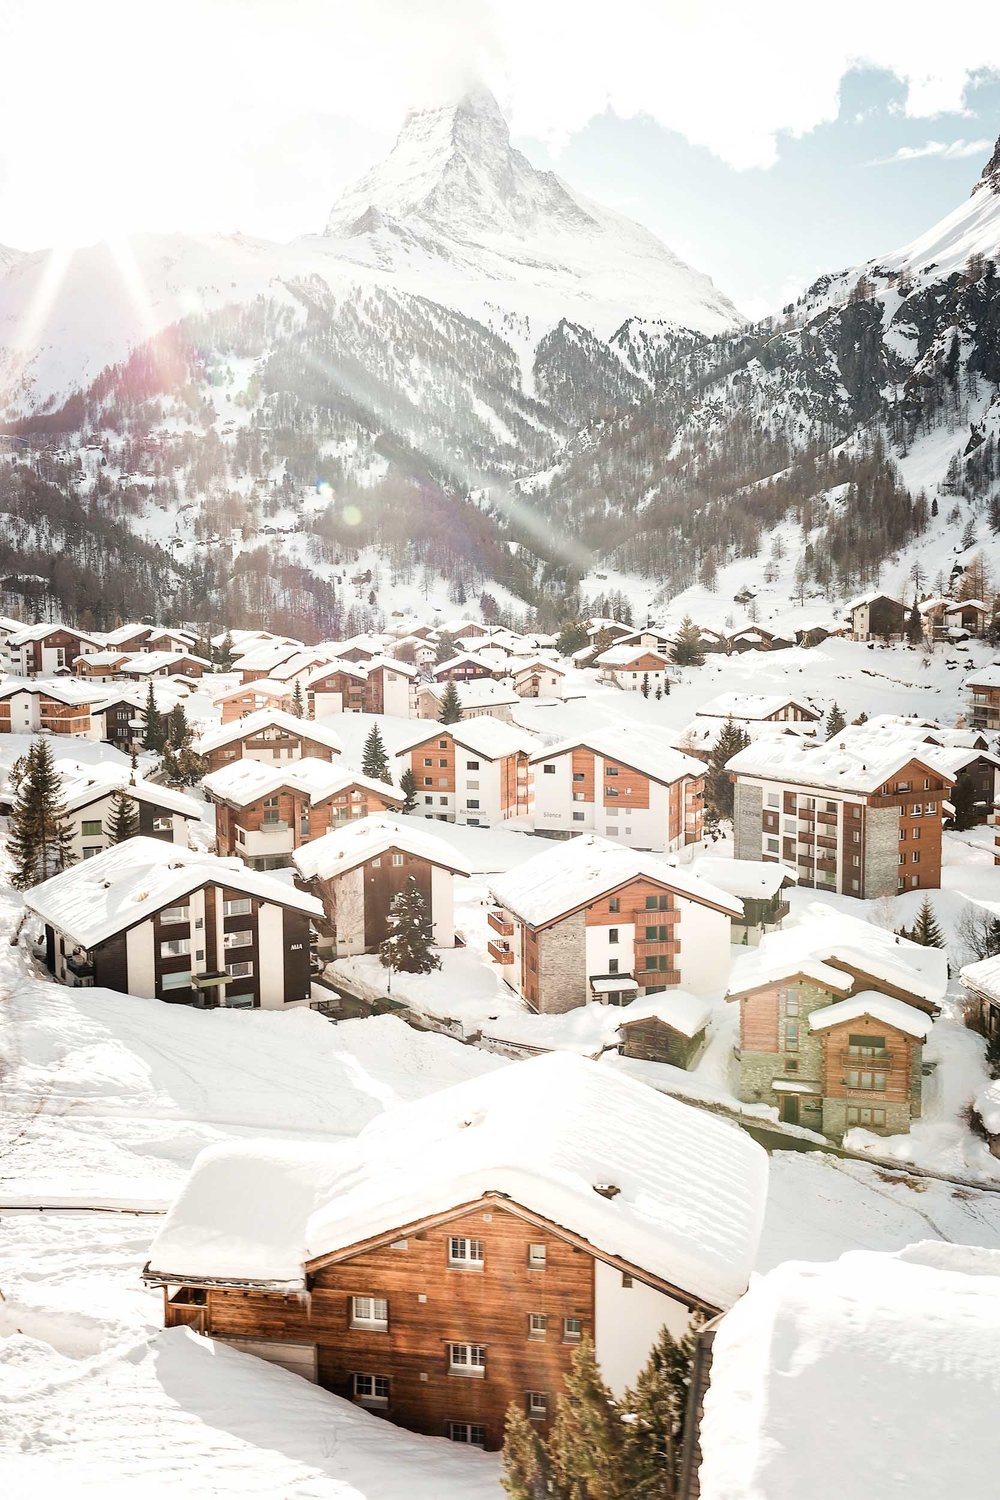 10 Beautiful Winter Travel Destinations To Put On Your Bucket List - Allie M. Taylor